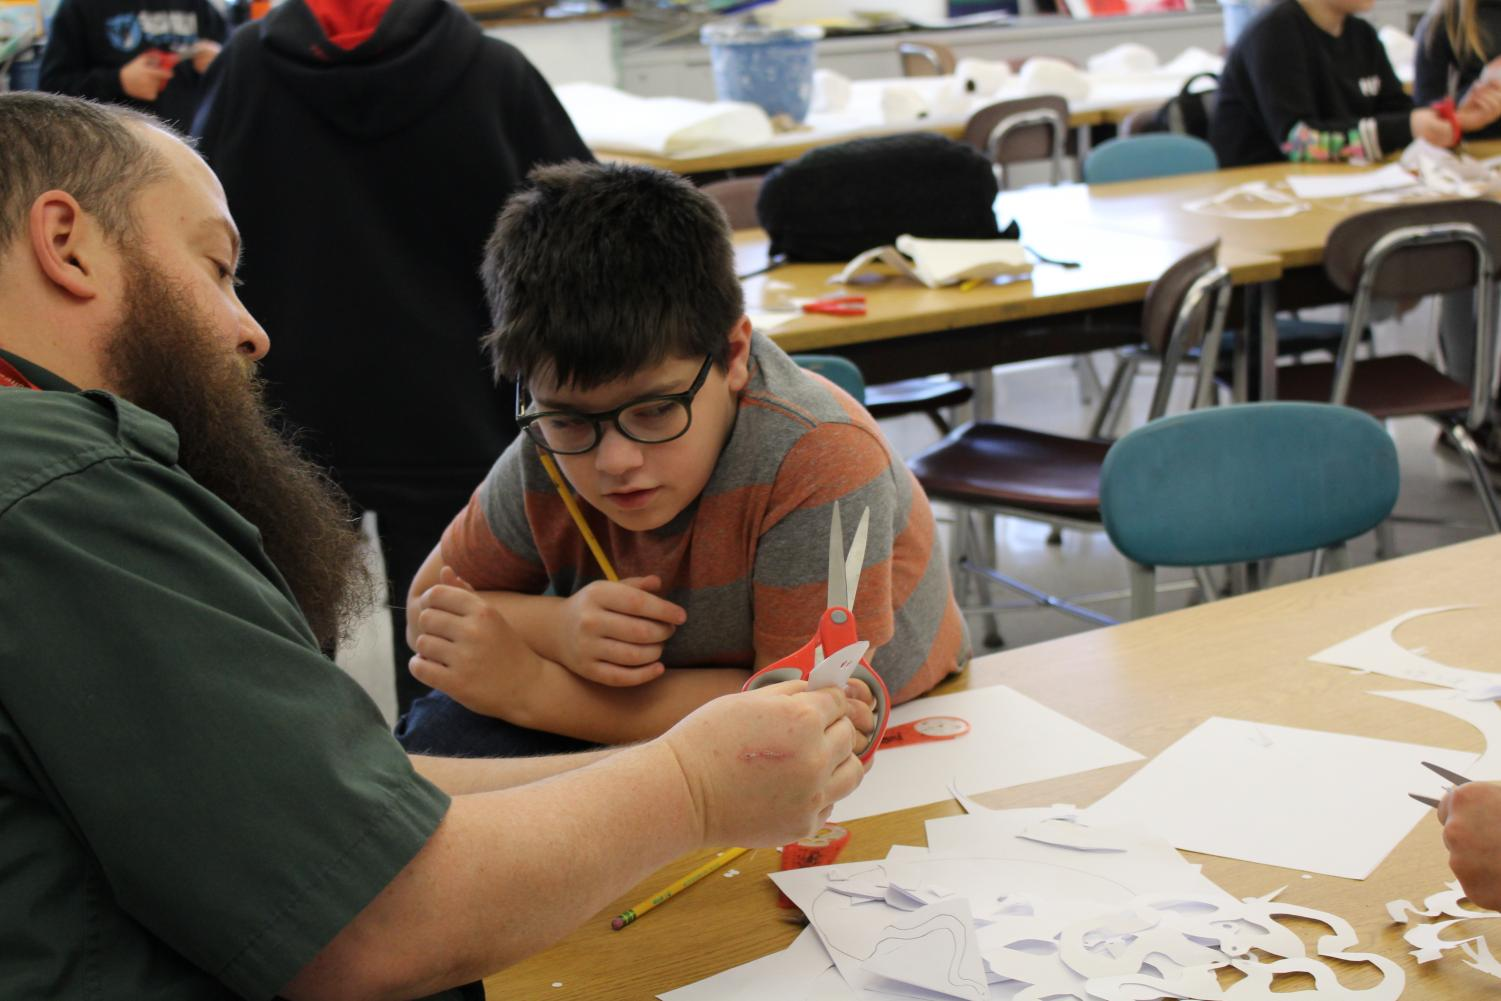 Mr. Gregg, art teacher, demonstrates to fifth grader Sam Giovengo how to cut a snowflake from paper during art class.